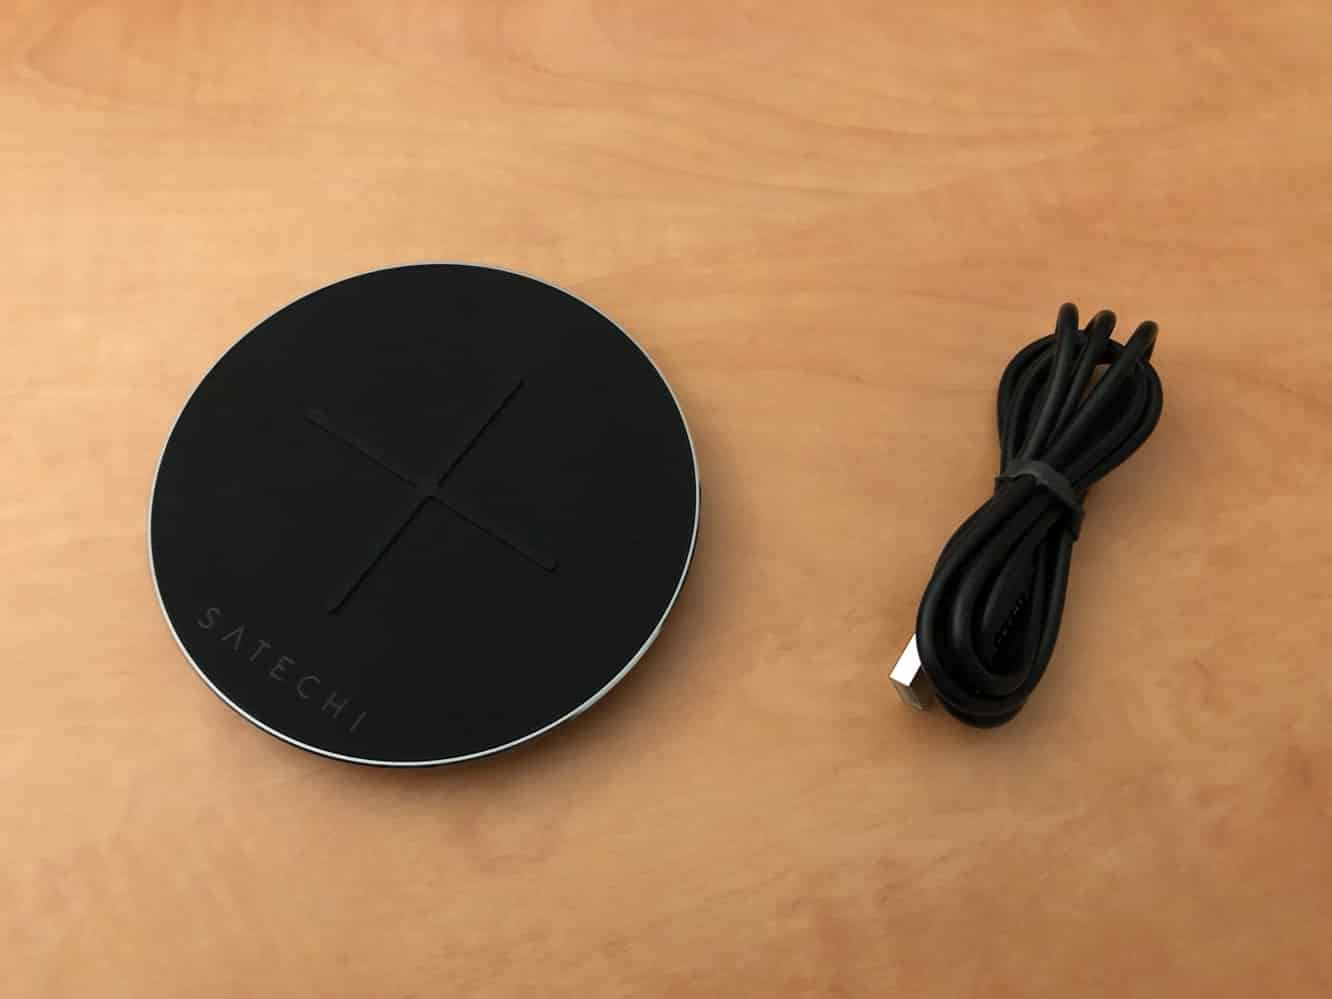 Review: Satechi Aluminum Type-C PD & QC Wireless Charger